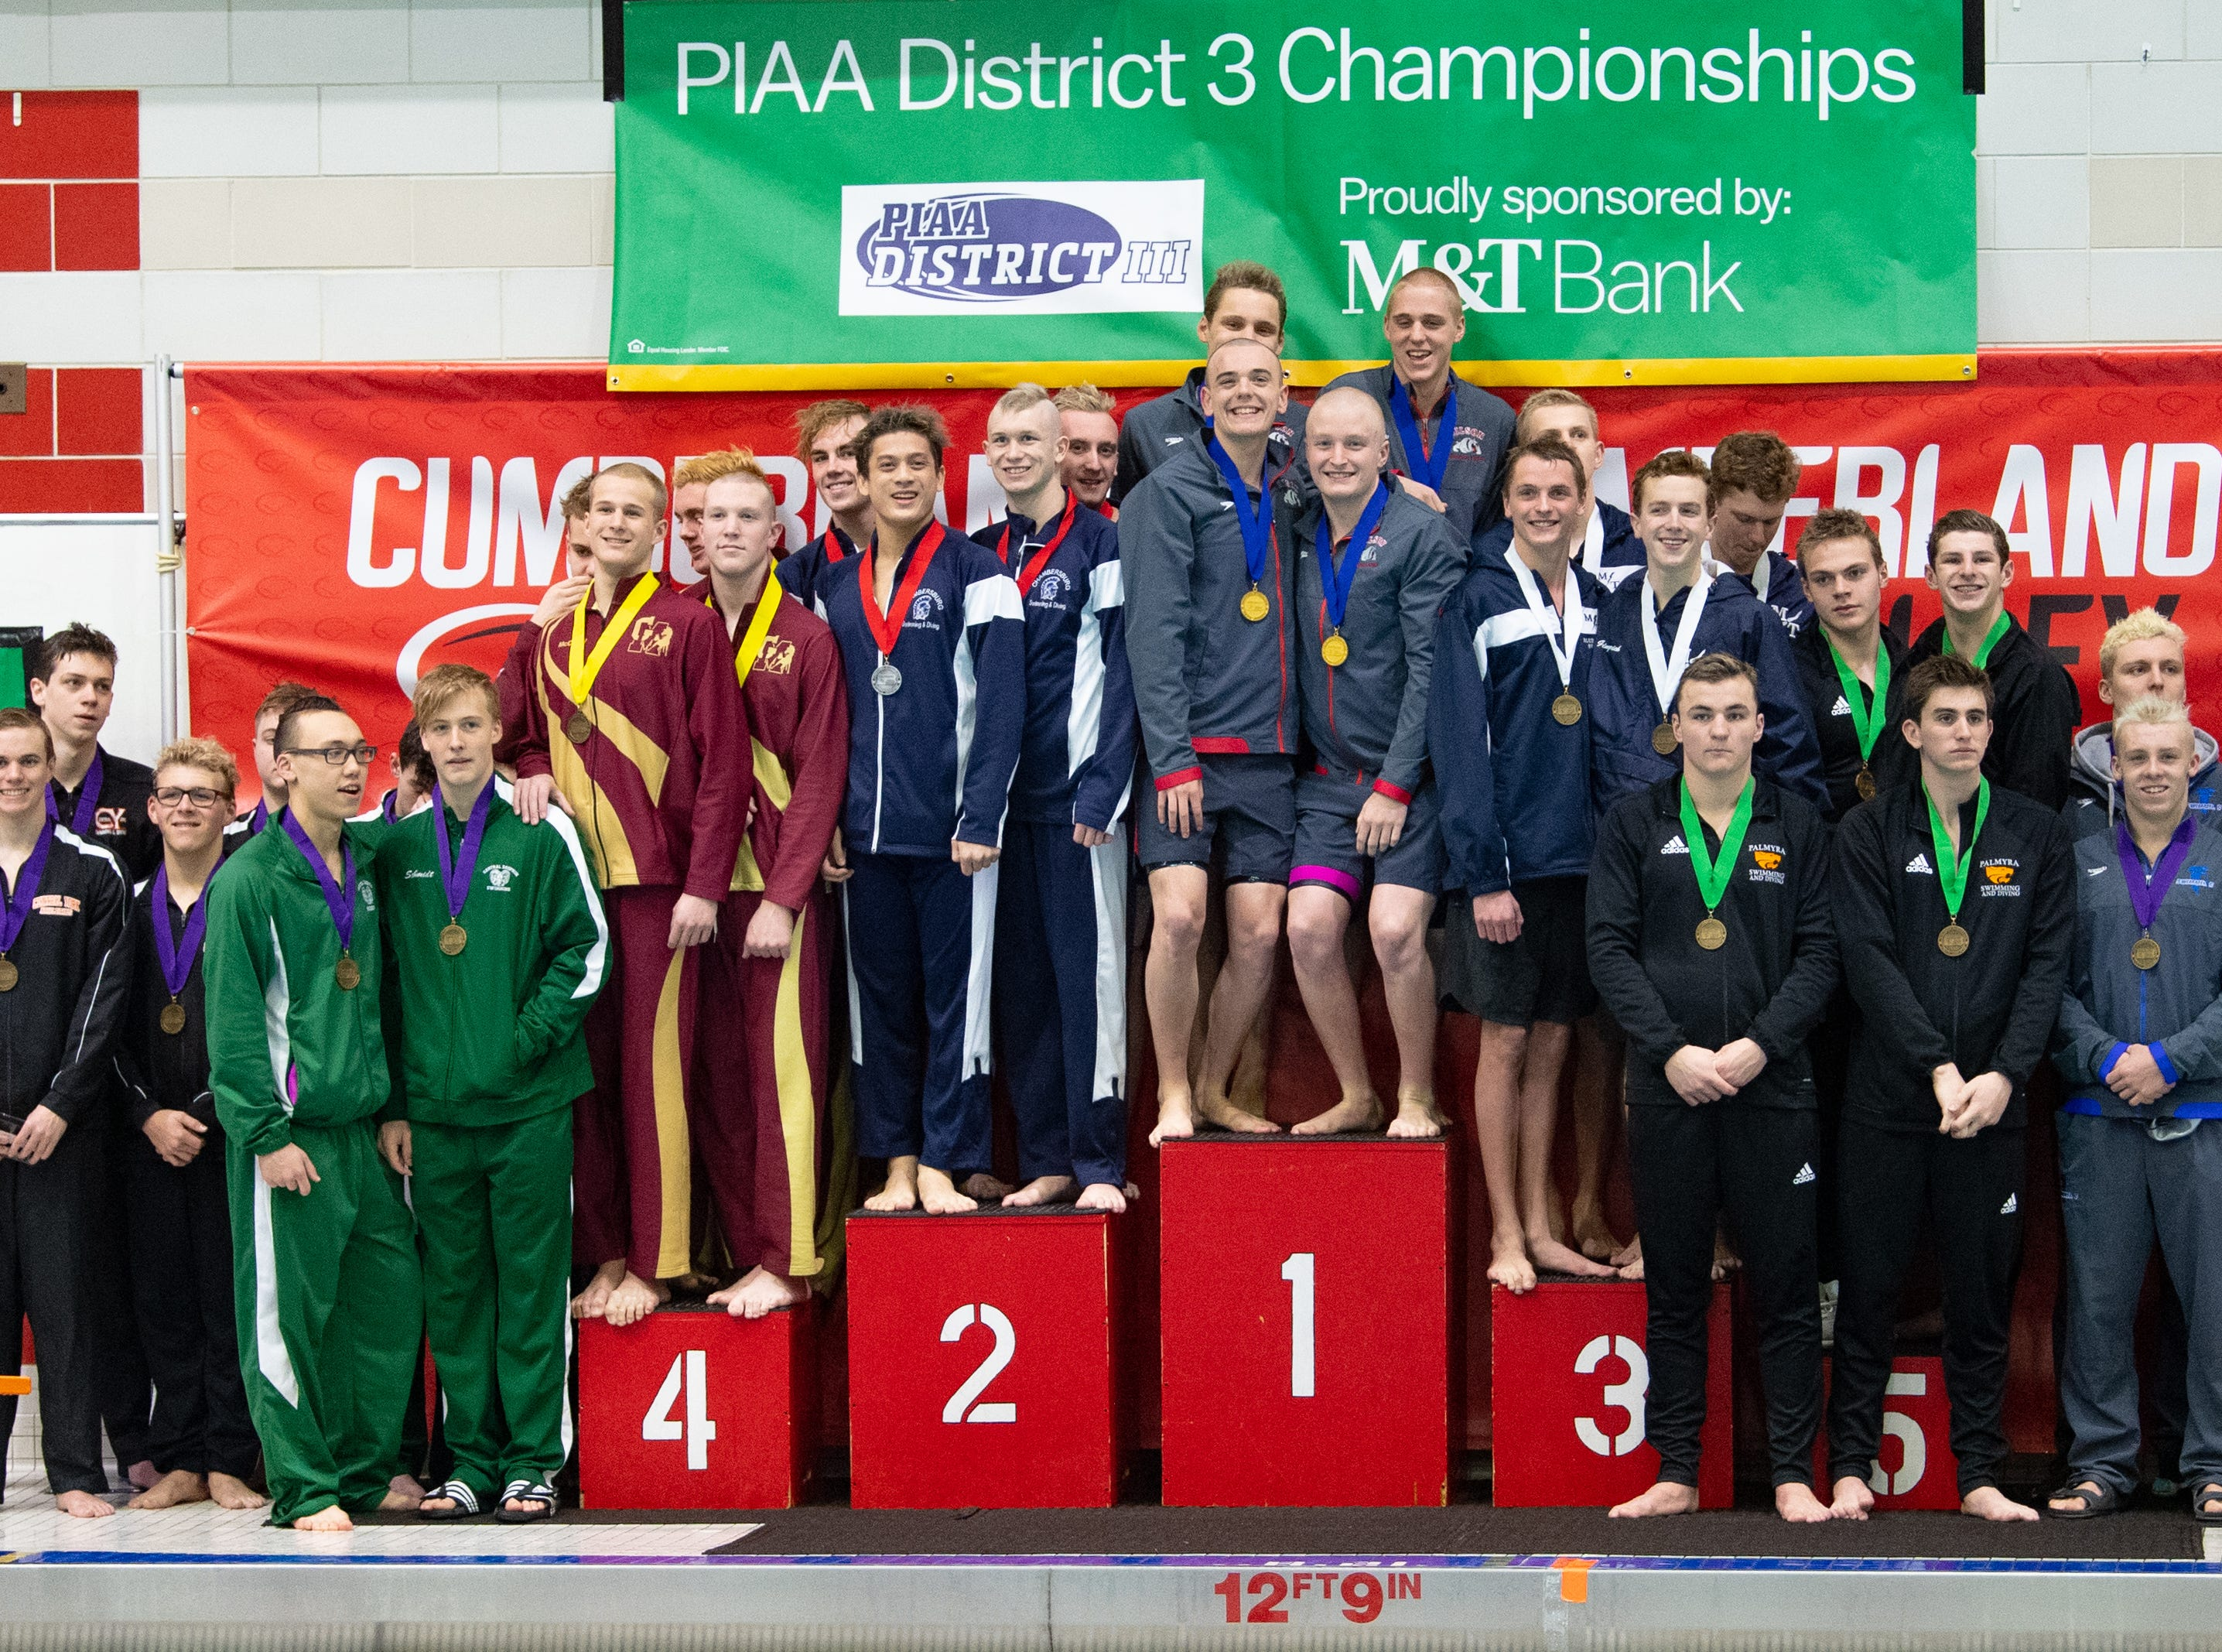 The winners of the 200 Yard Medley Relay receive their medals during the PIAA District 3 Boys AAA Championship, March 1, 2019 at Cumberland Valley High School.